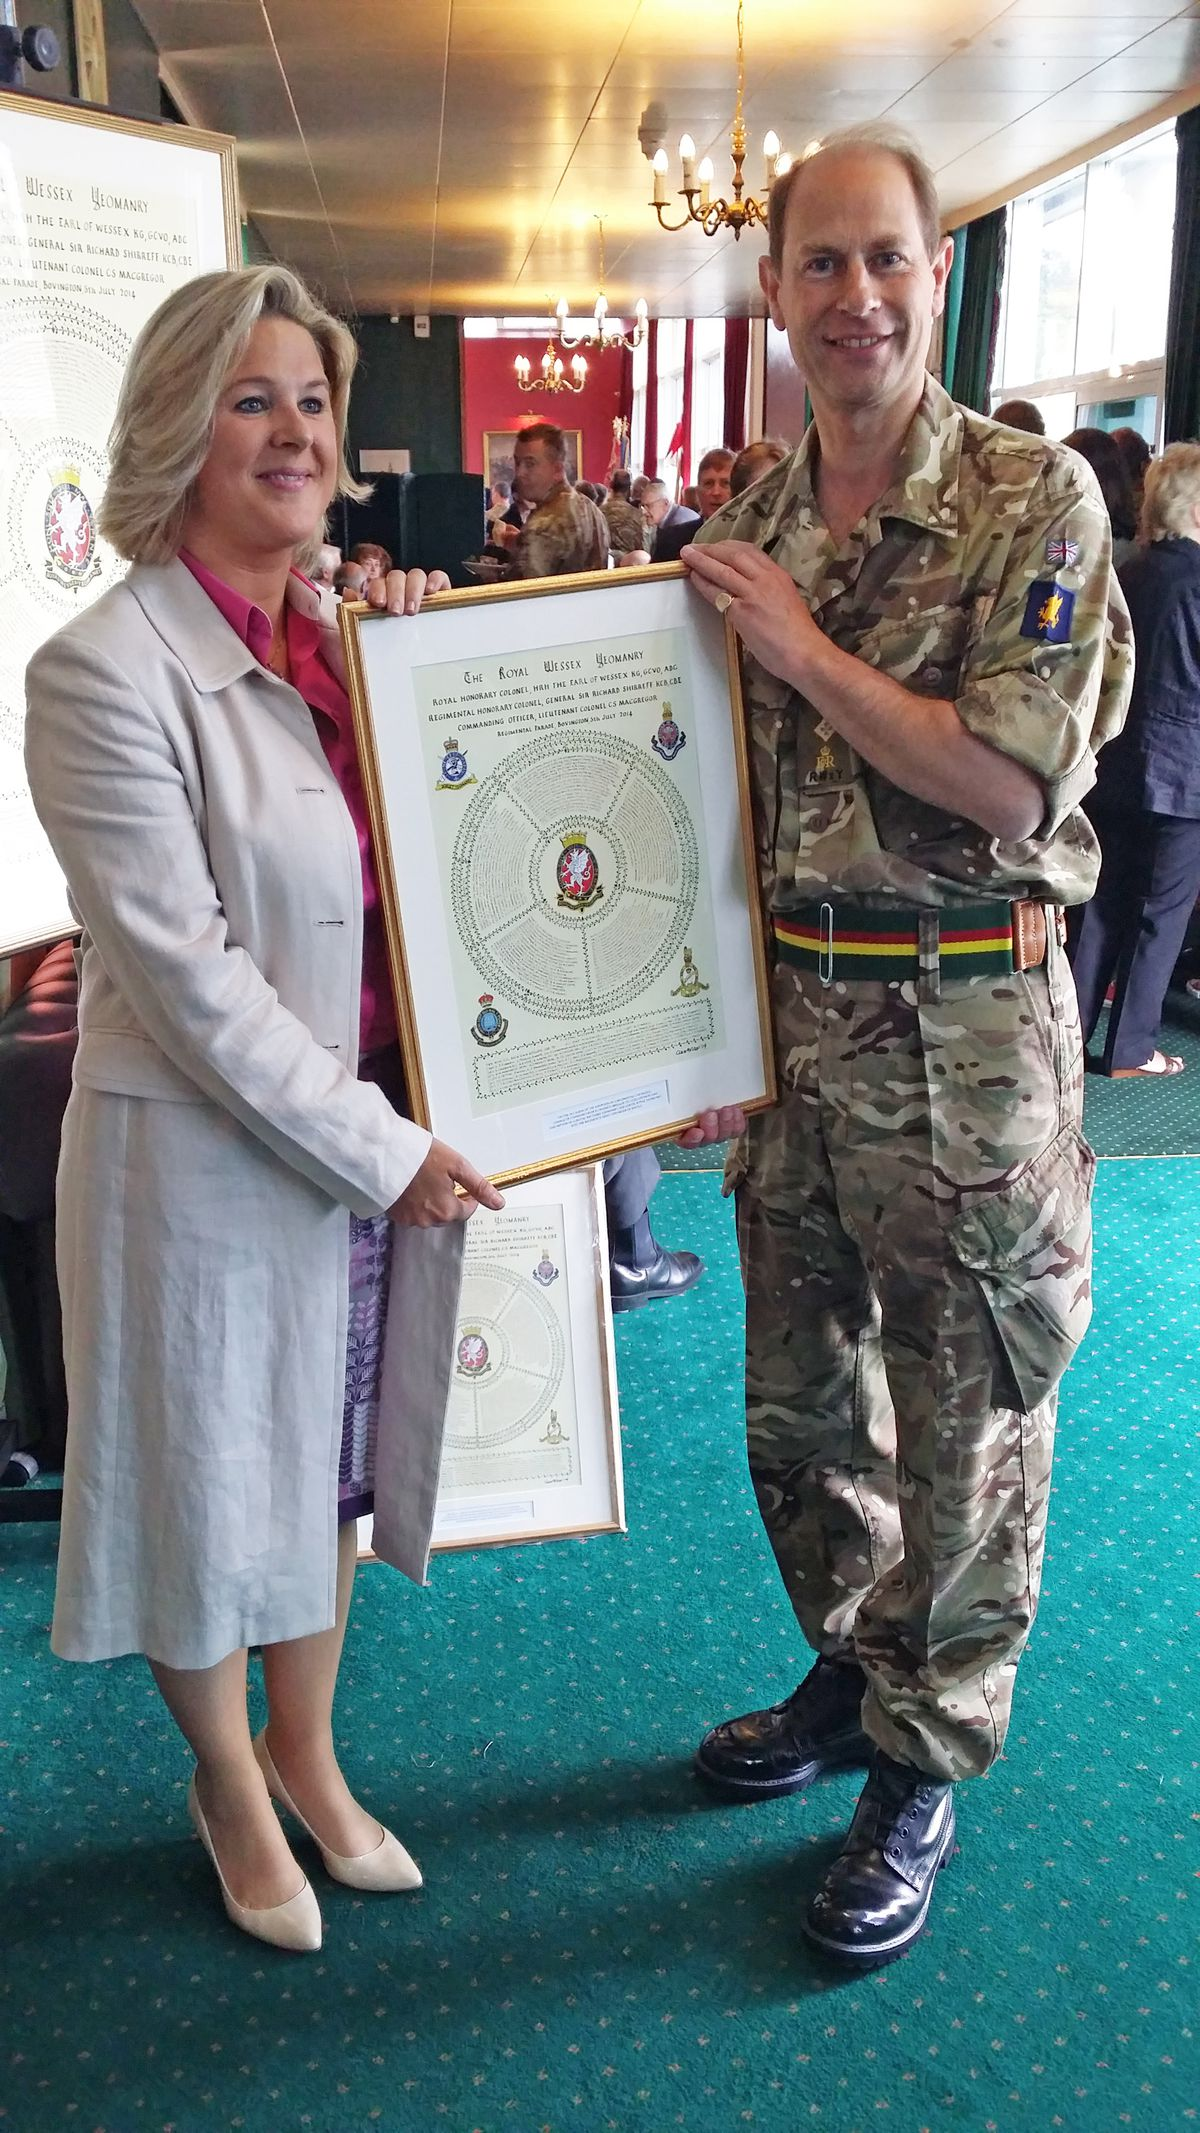 Clare Villar's presenting one of her works for the Royal Wessex Yeomanry to Earl of Wessex, Prince Edward in 2014.